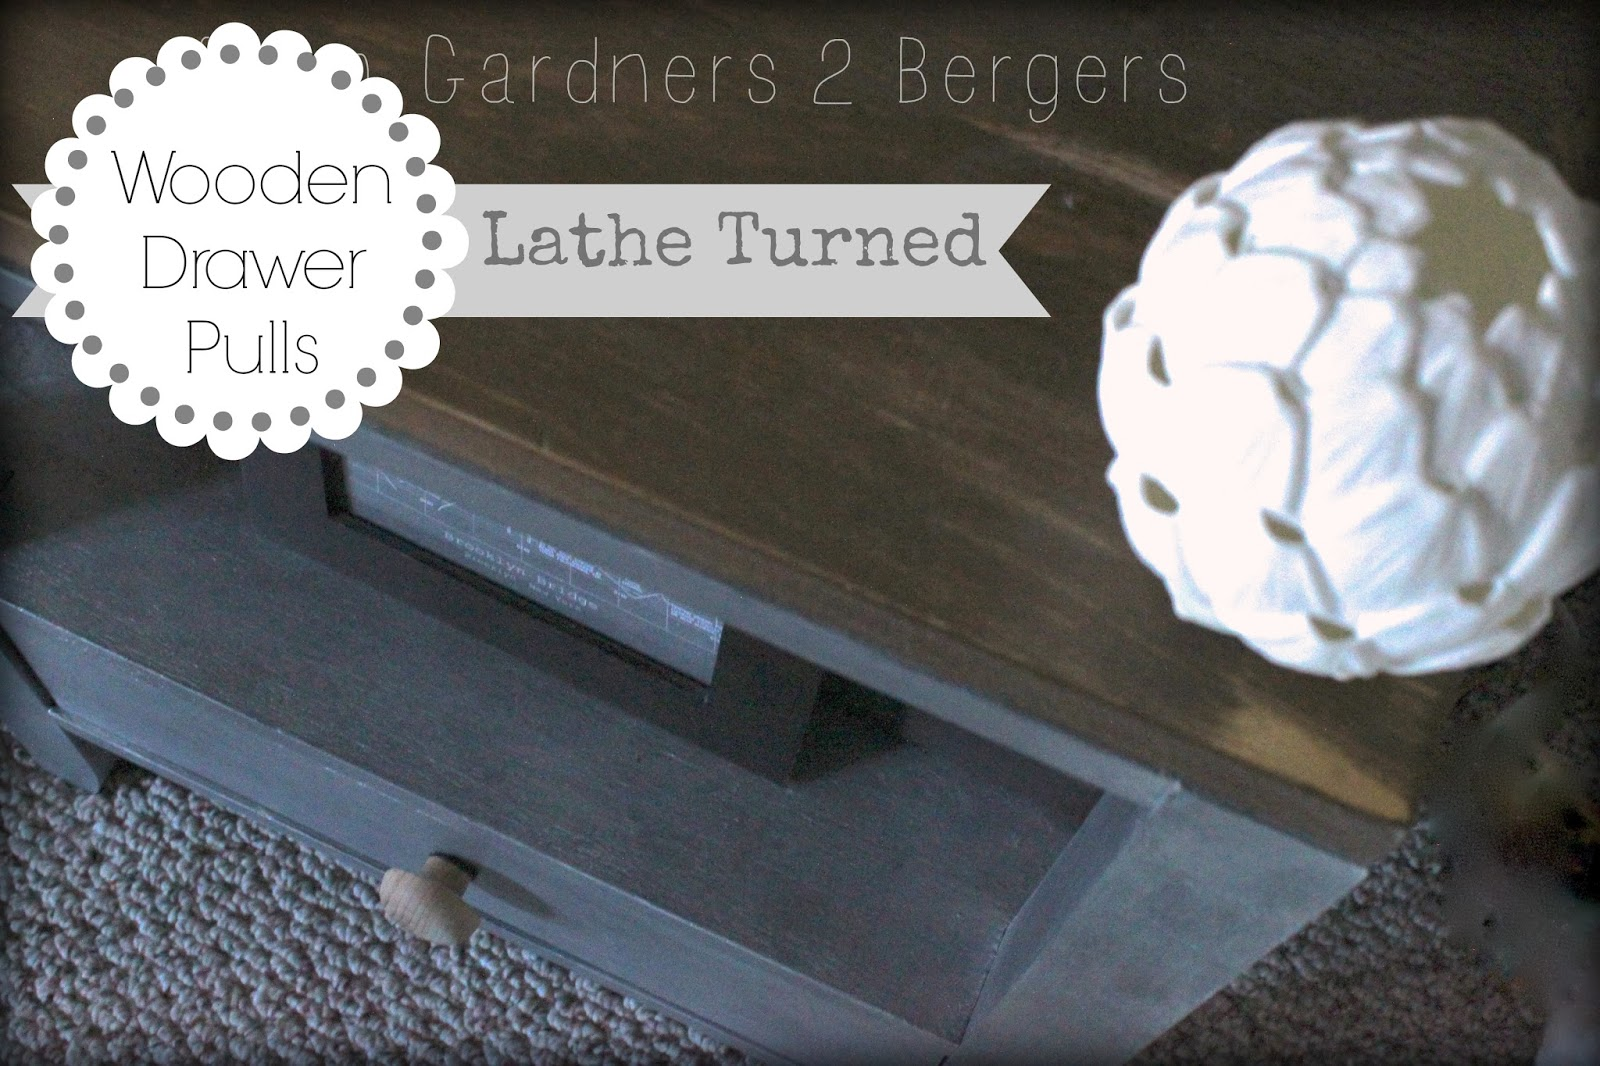 Lathe-Turned-Wooden-Drawer-Pulls-here